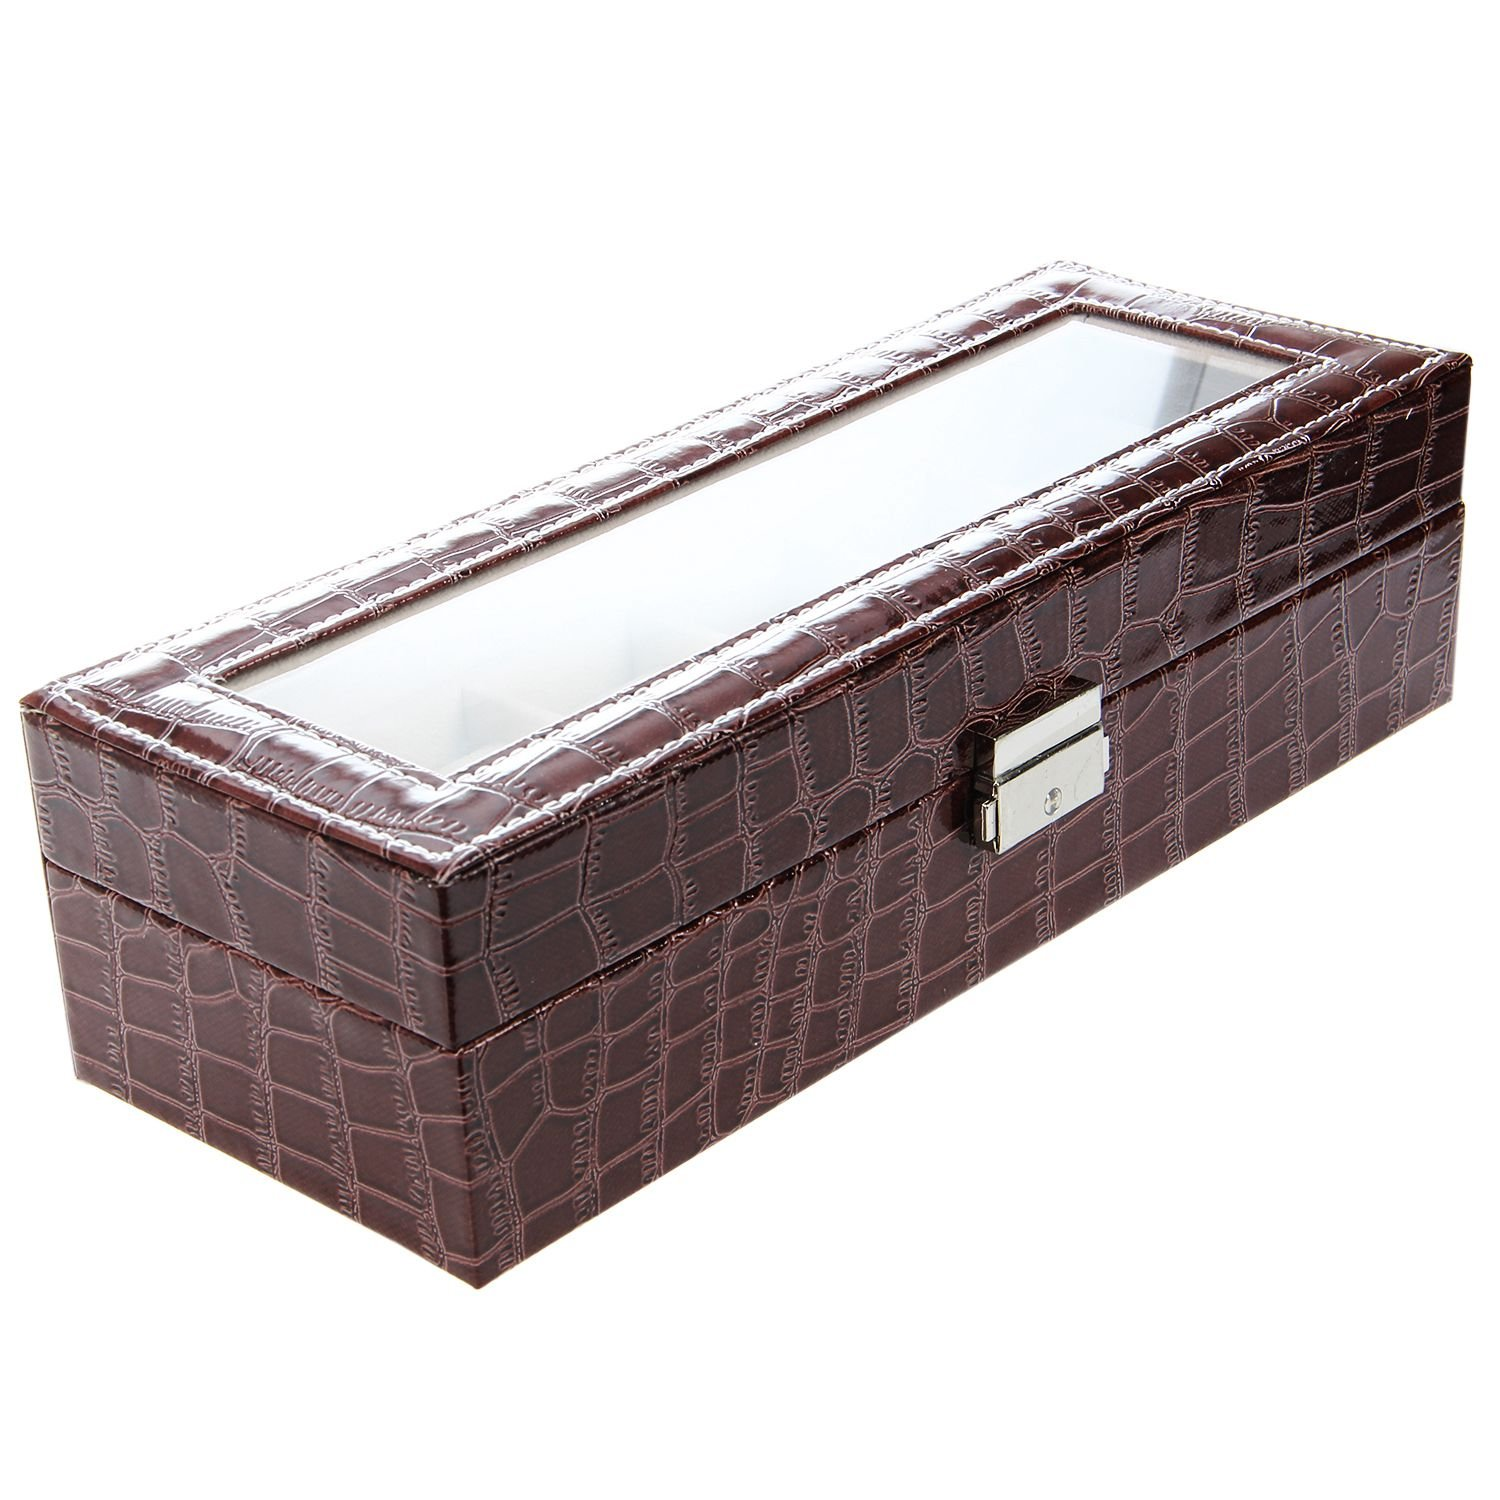 SODIAL(R) Faux Leather Watch Case Storage Display Box Organiser Jewelery Glass Top Size:6 Grid Crocodile Brown